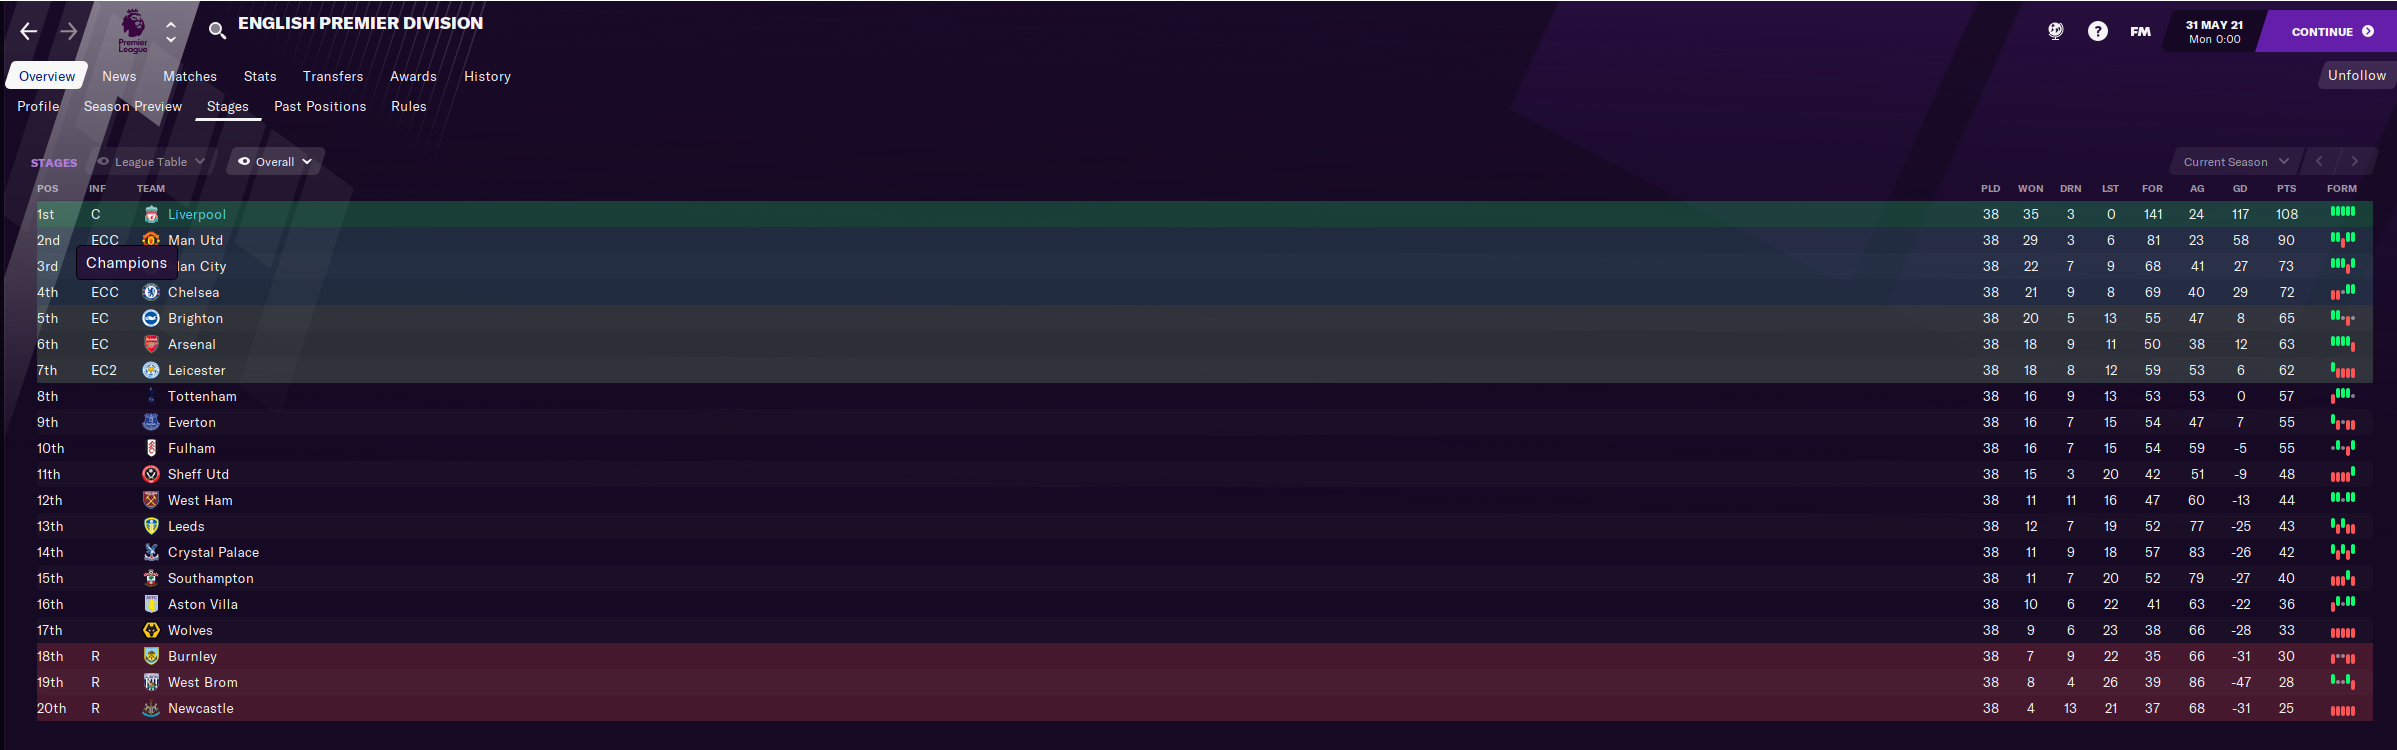 lfc_league_b.png